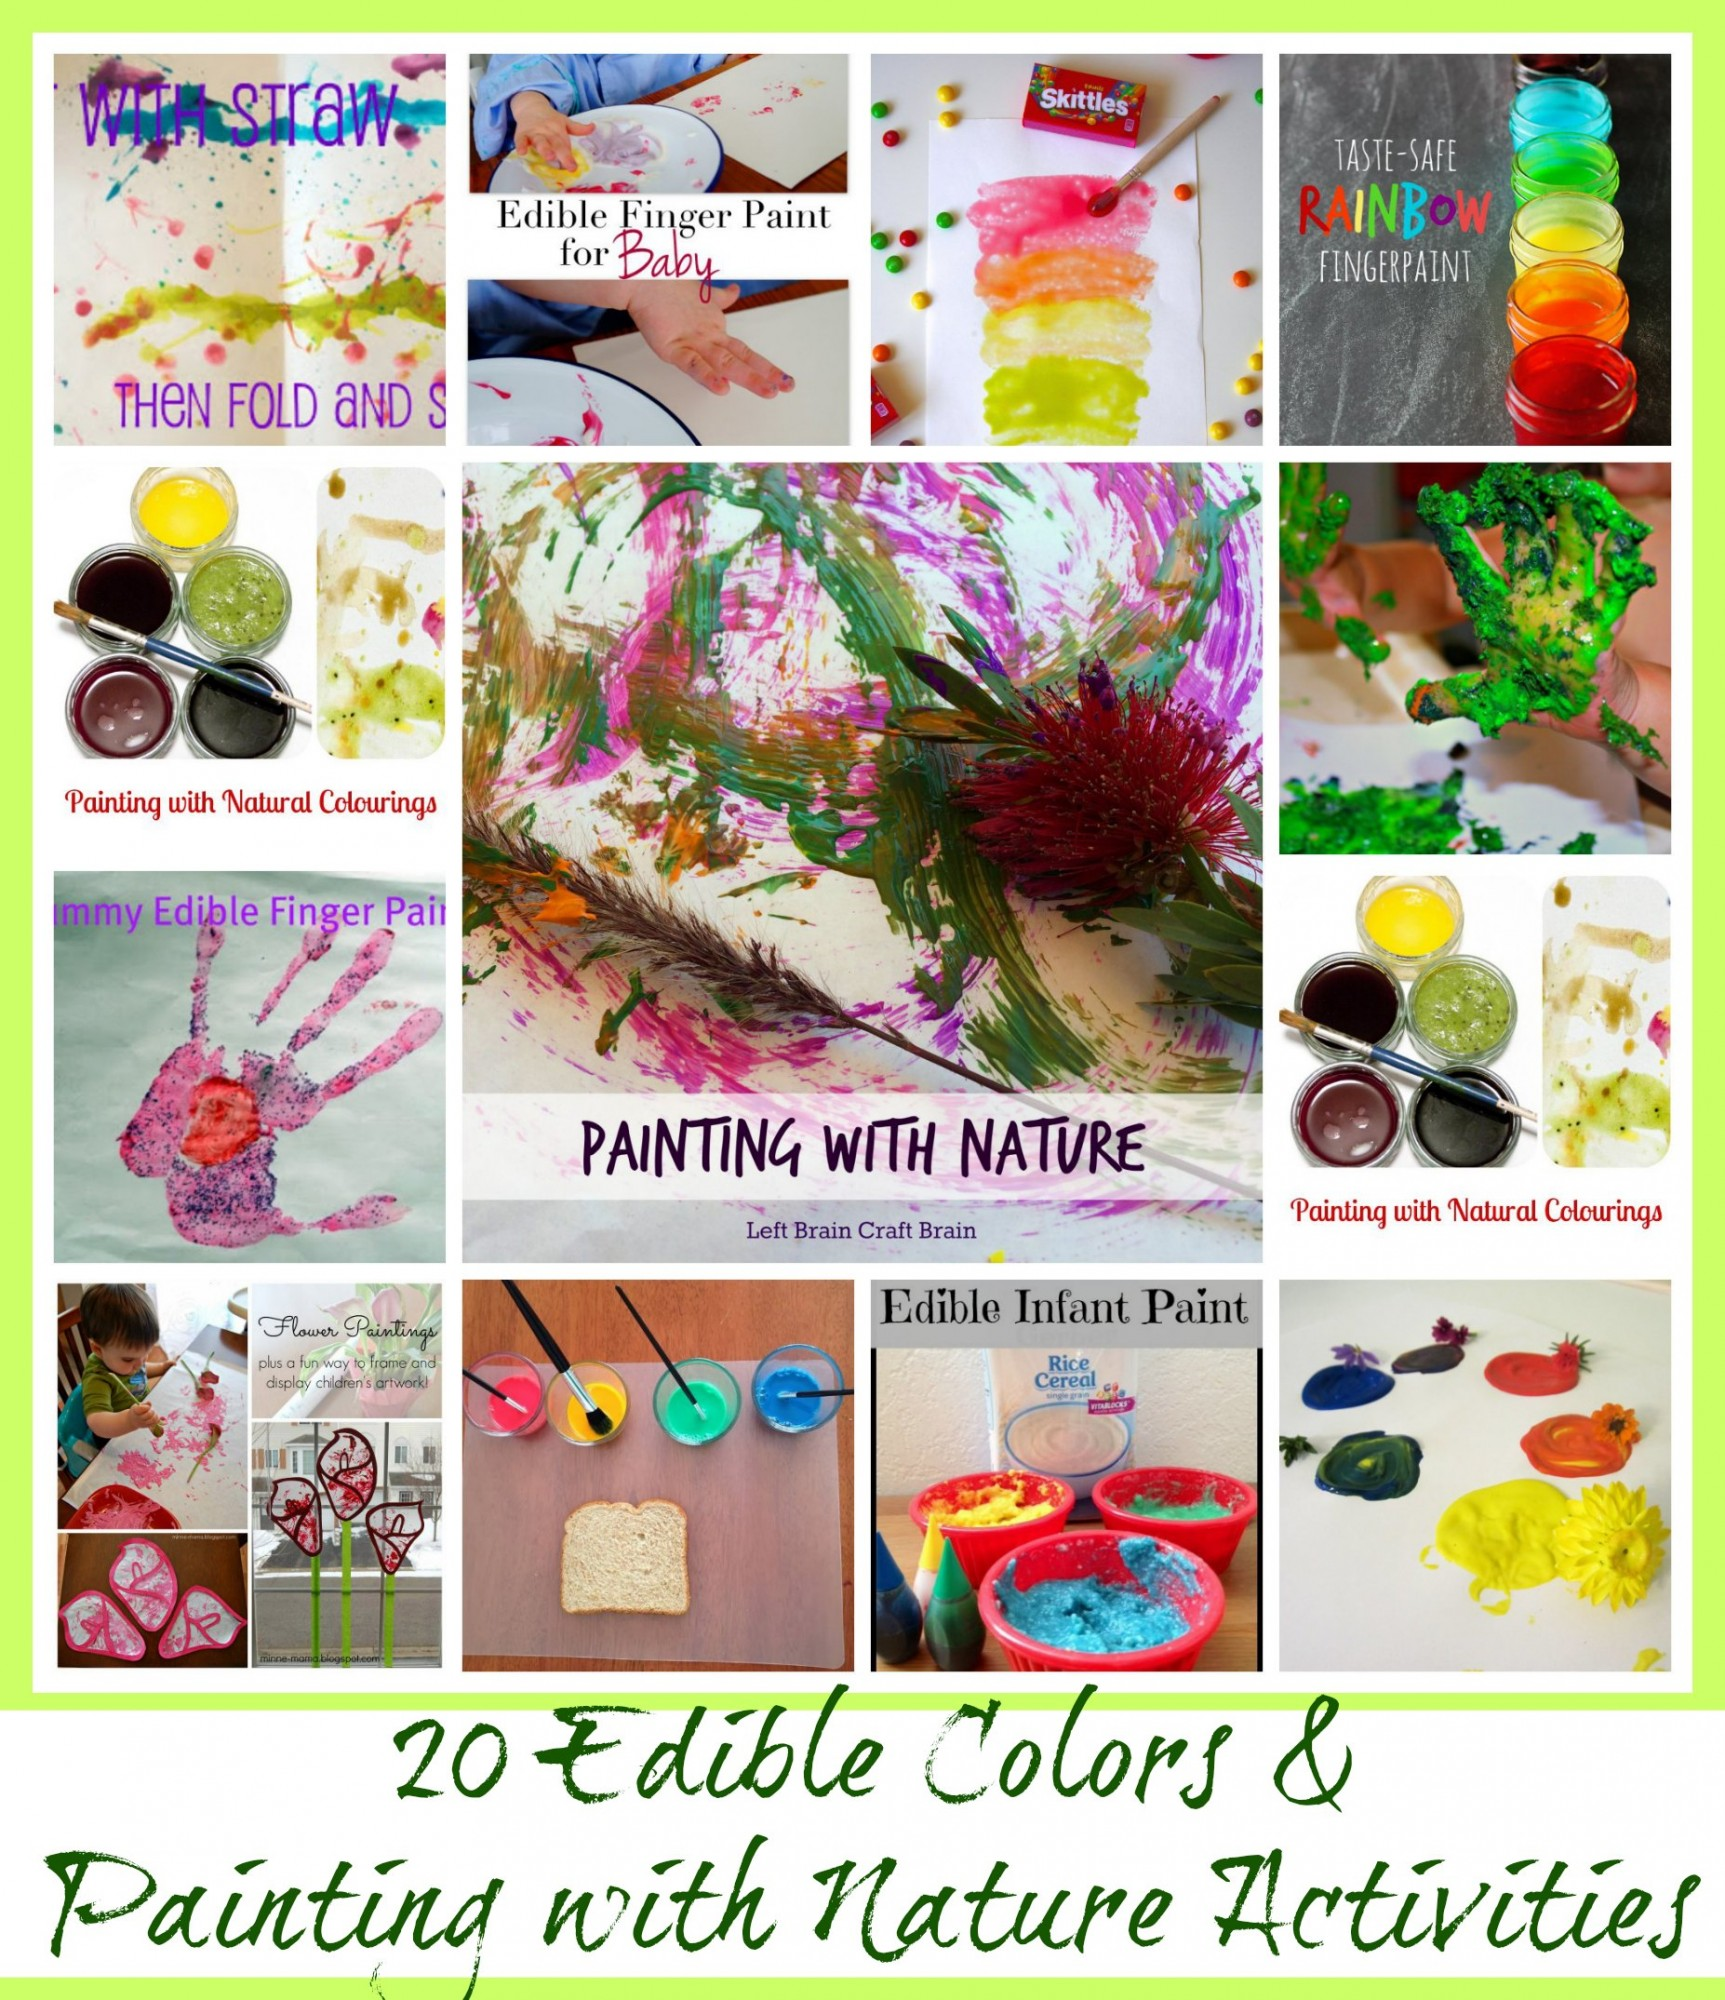 20 Edible Colors and Painting with Nature Activities - www.mamashappyhive.com